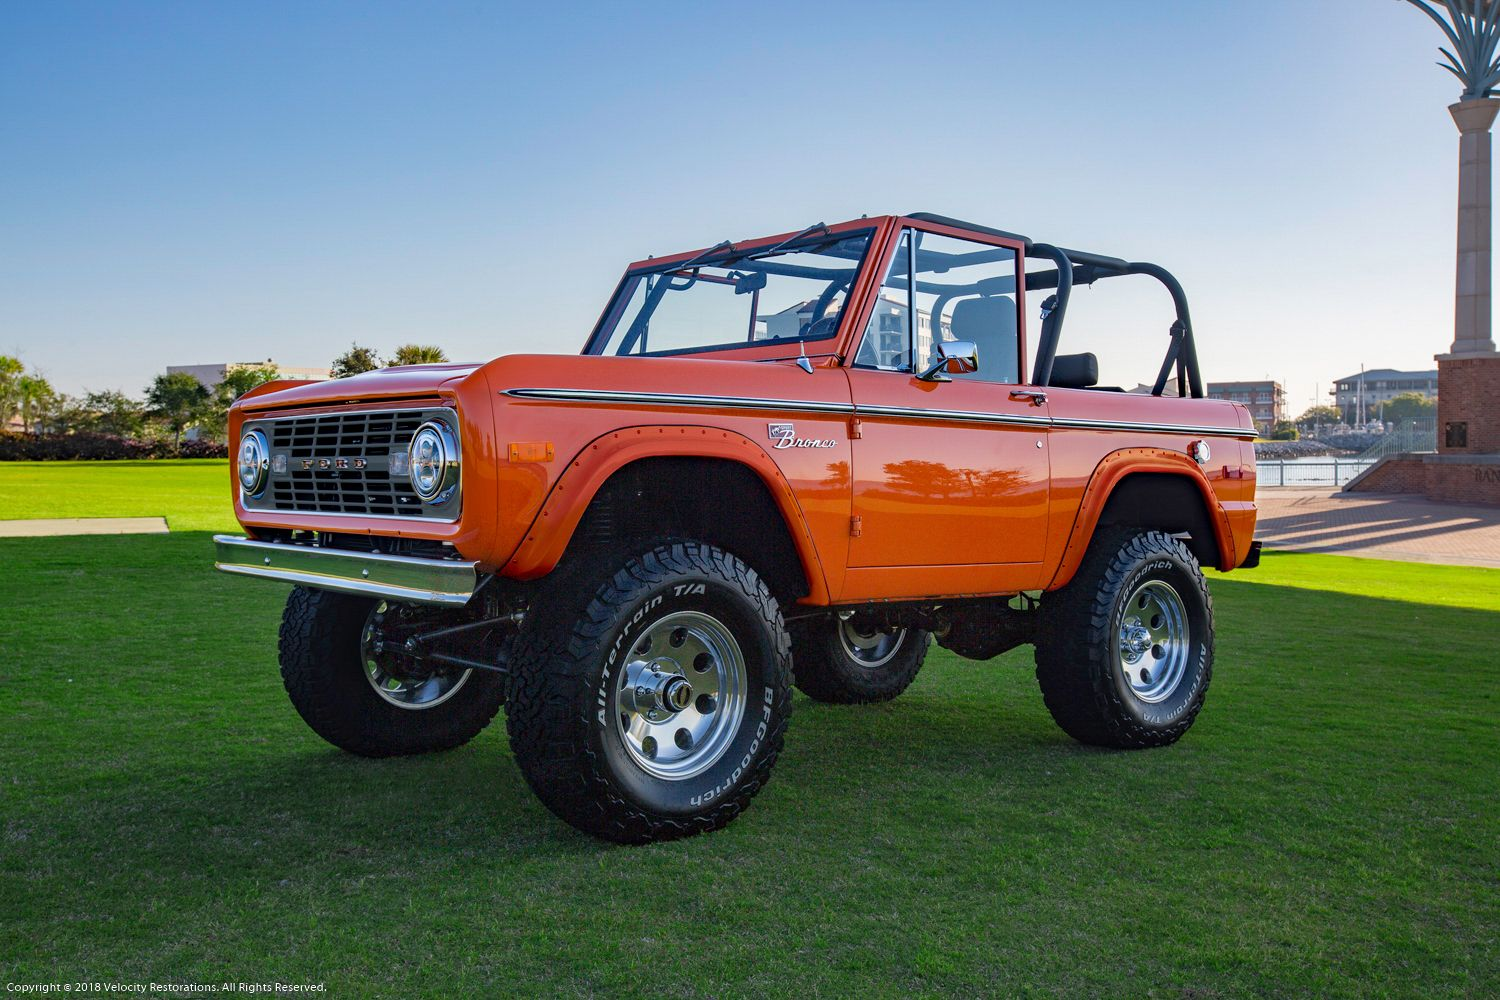 Ford Bronco Restoration >> New Home Classic Ford Broncos Ford Bronco Old Classic Cars